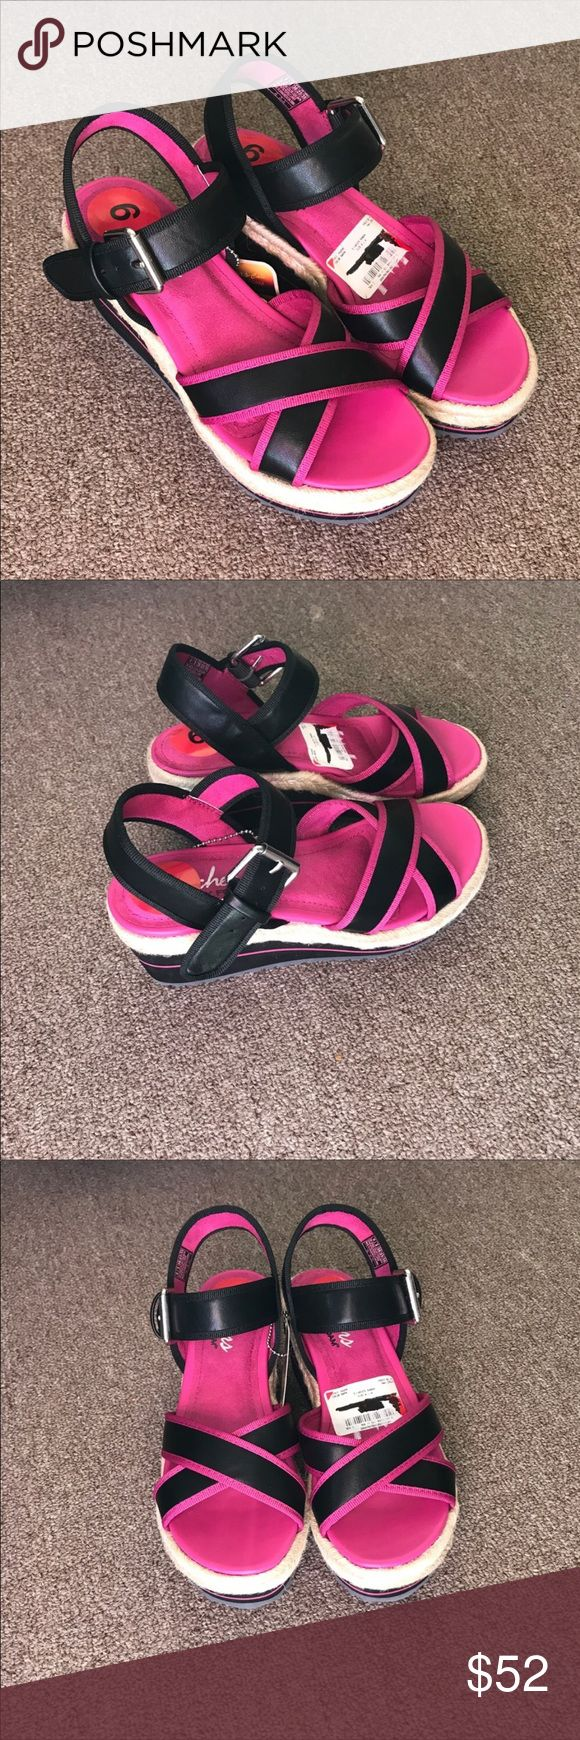 NWT Skechers wedge cali memory foam sandals 6 New with tag. Skechers brand. Memory foam sandals with more support and cushion. Side buckle. Wedge sandals in black and pink. Size 6. Skechers Shoes Sandals